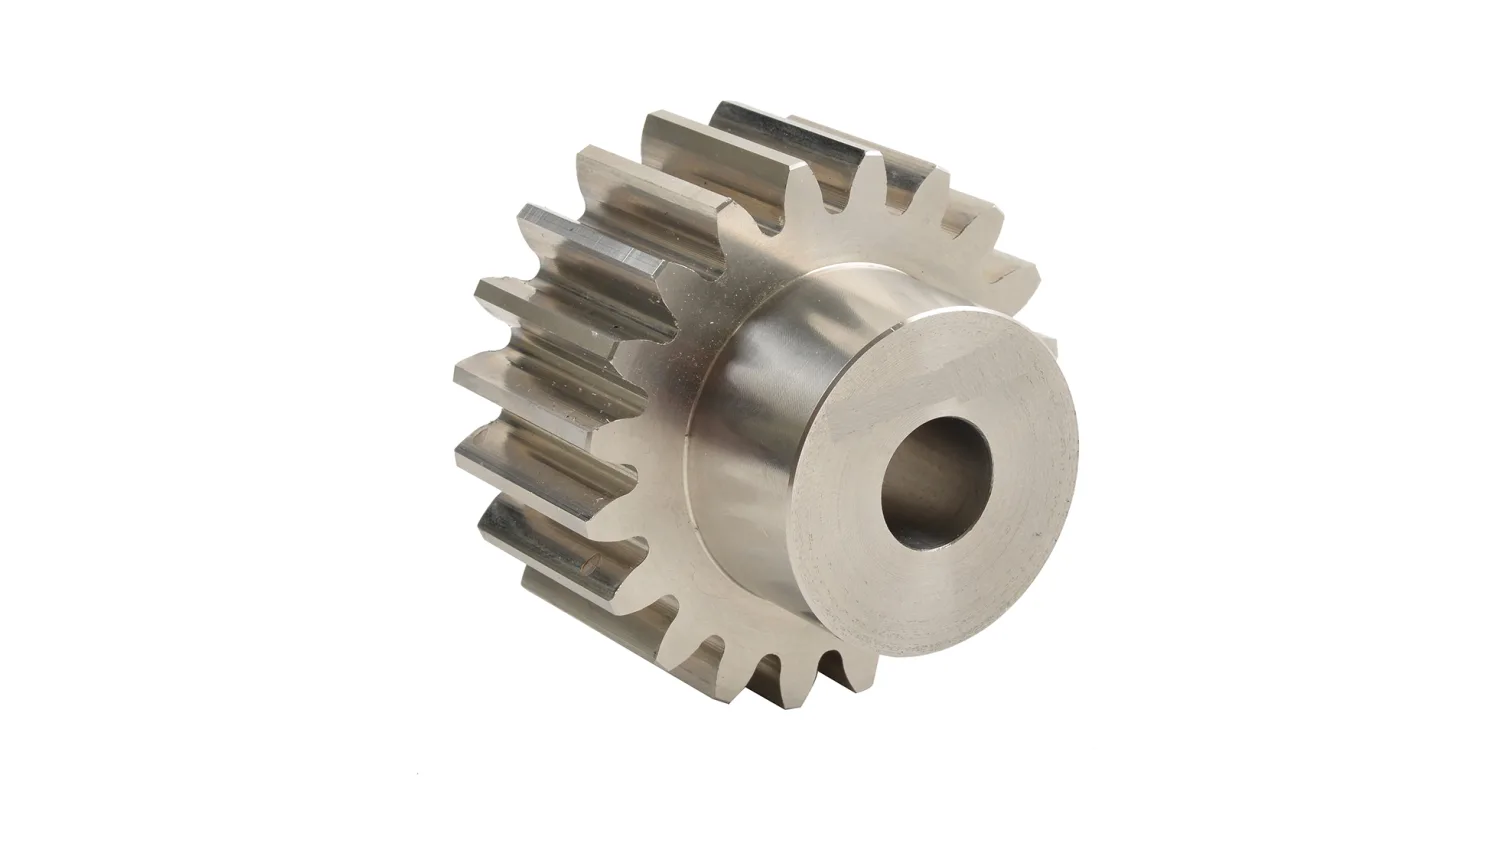 2-Mod-x-49-Tooth-Metric-Spur-Gear-in-Steel